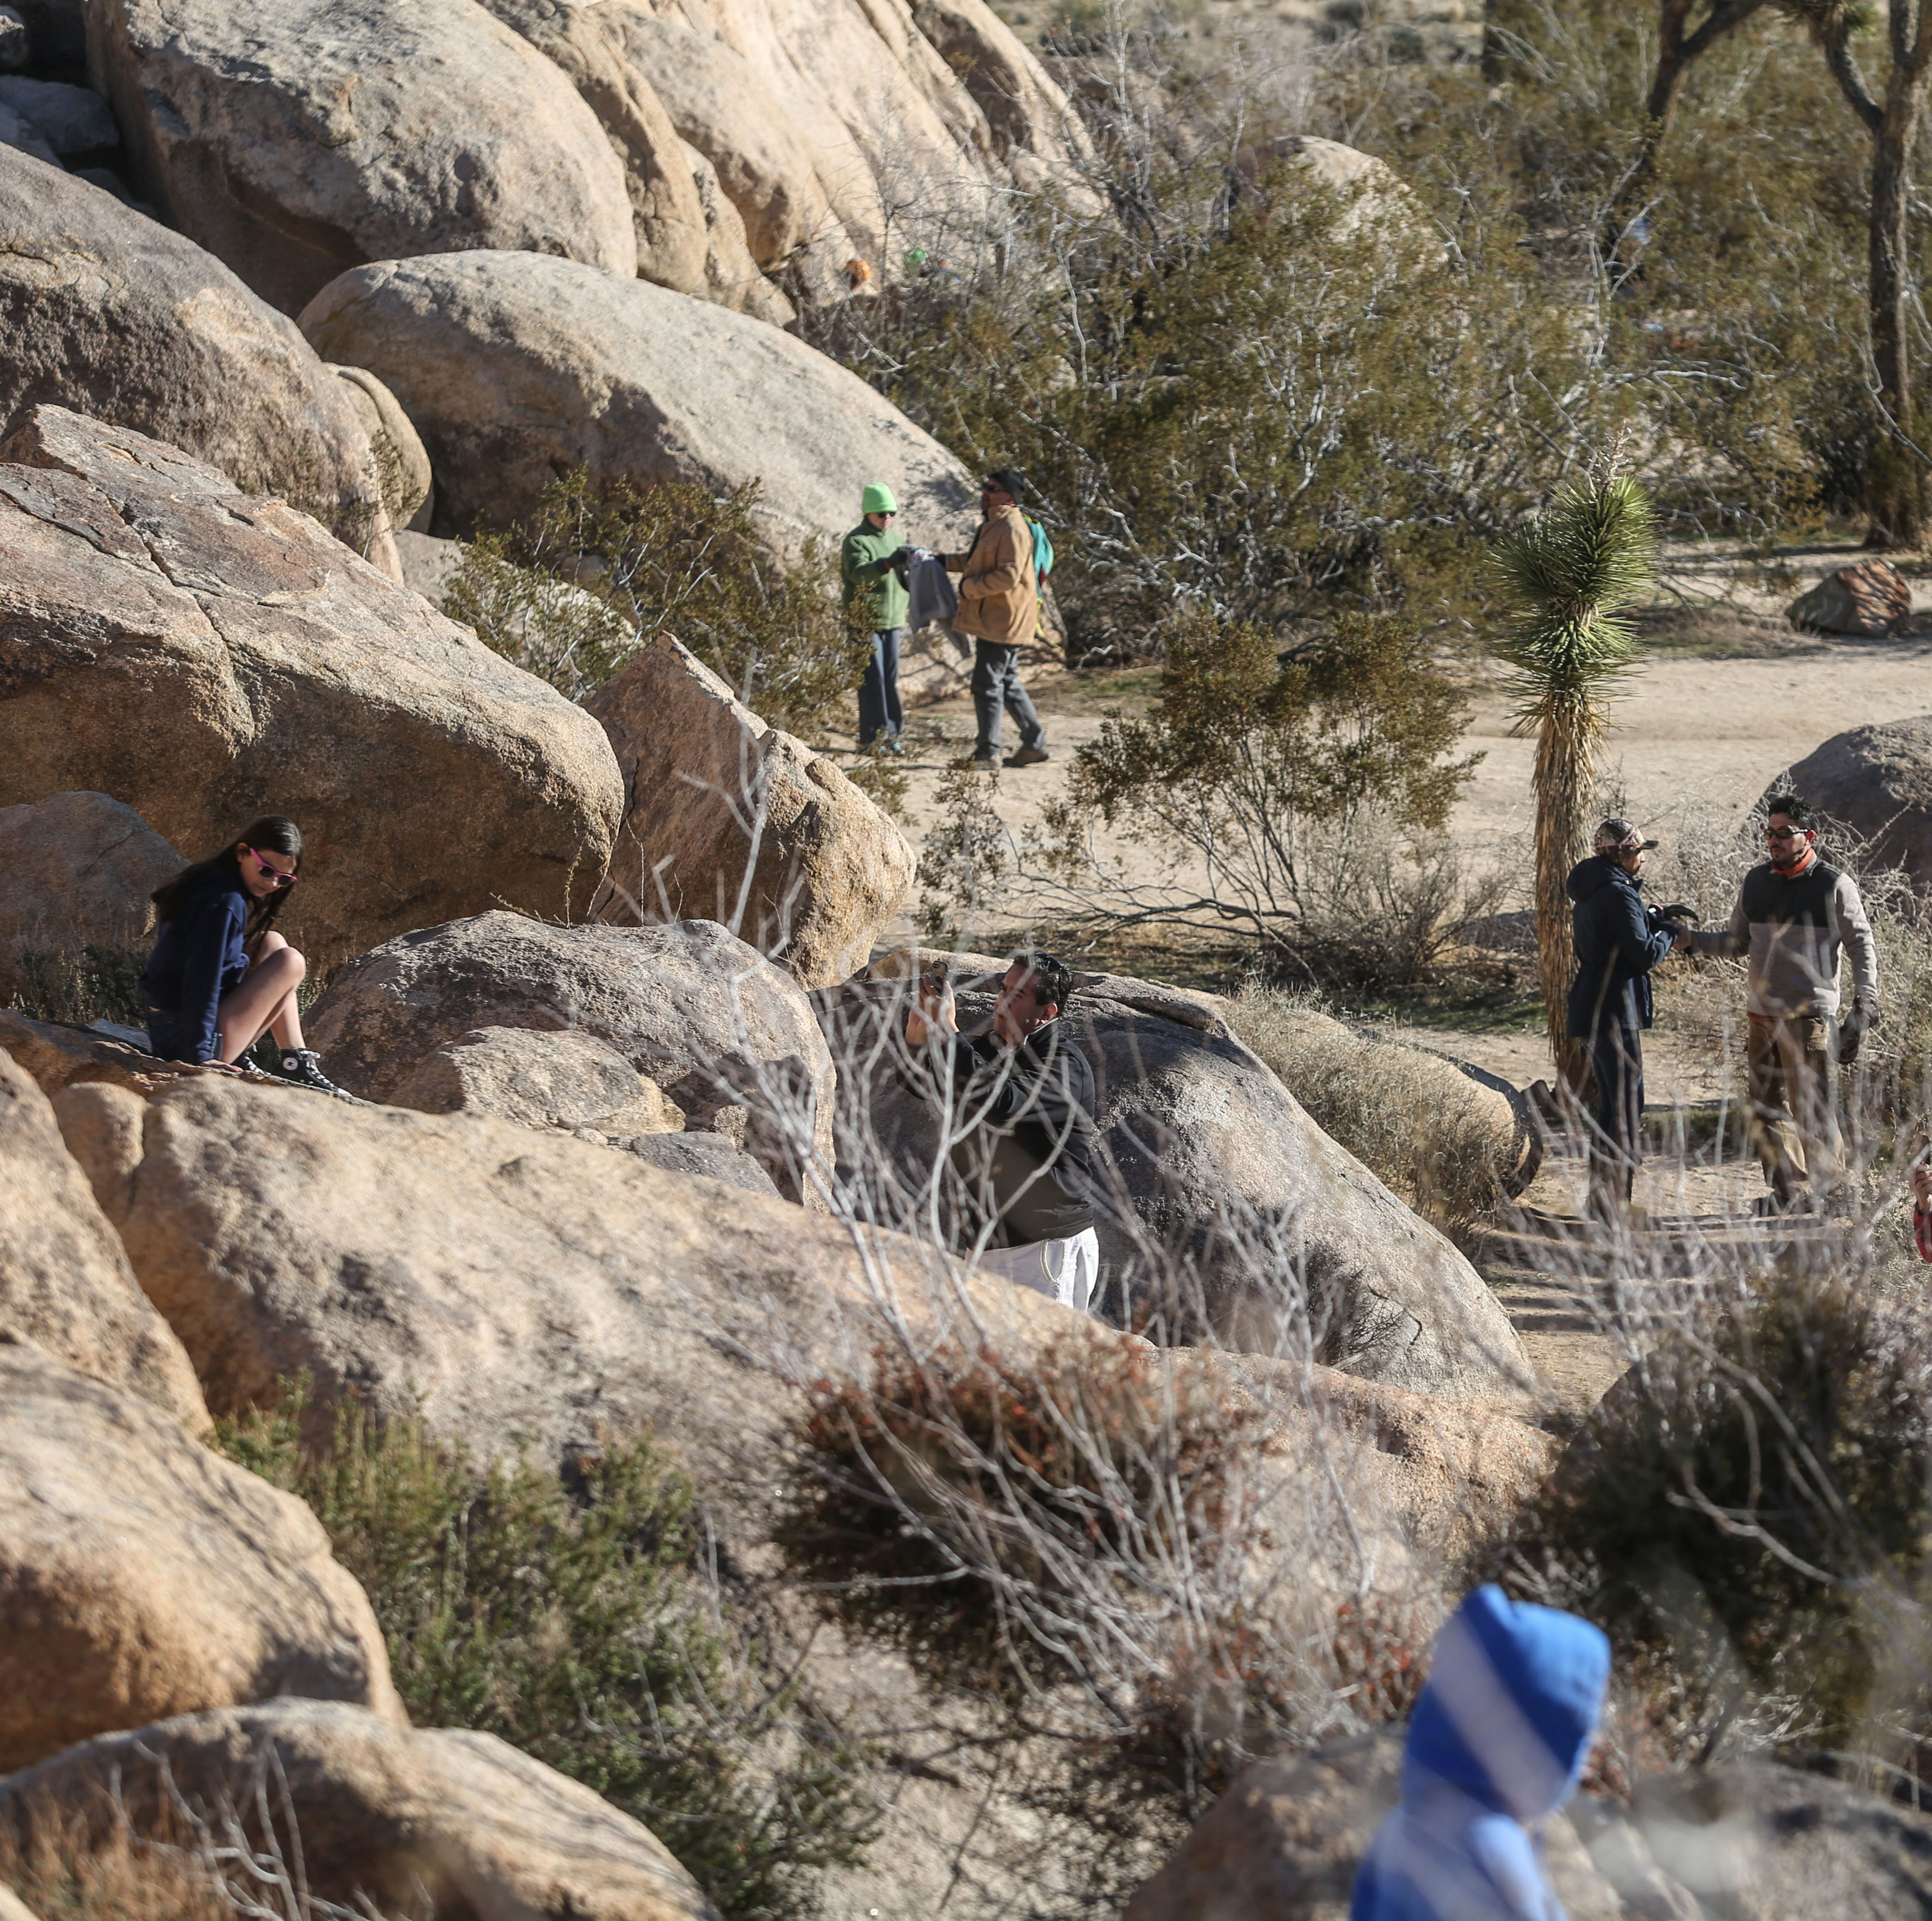 Tourists at Quail Springs at Joshua Tree National Park on Friday, December 28, 2018. Visitors continue to enter the park despite it being unstaffed due to the government shutdown.